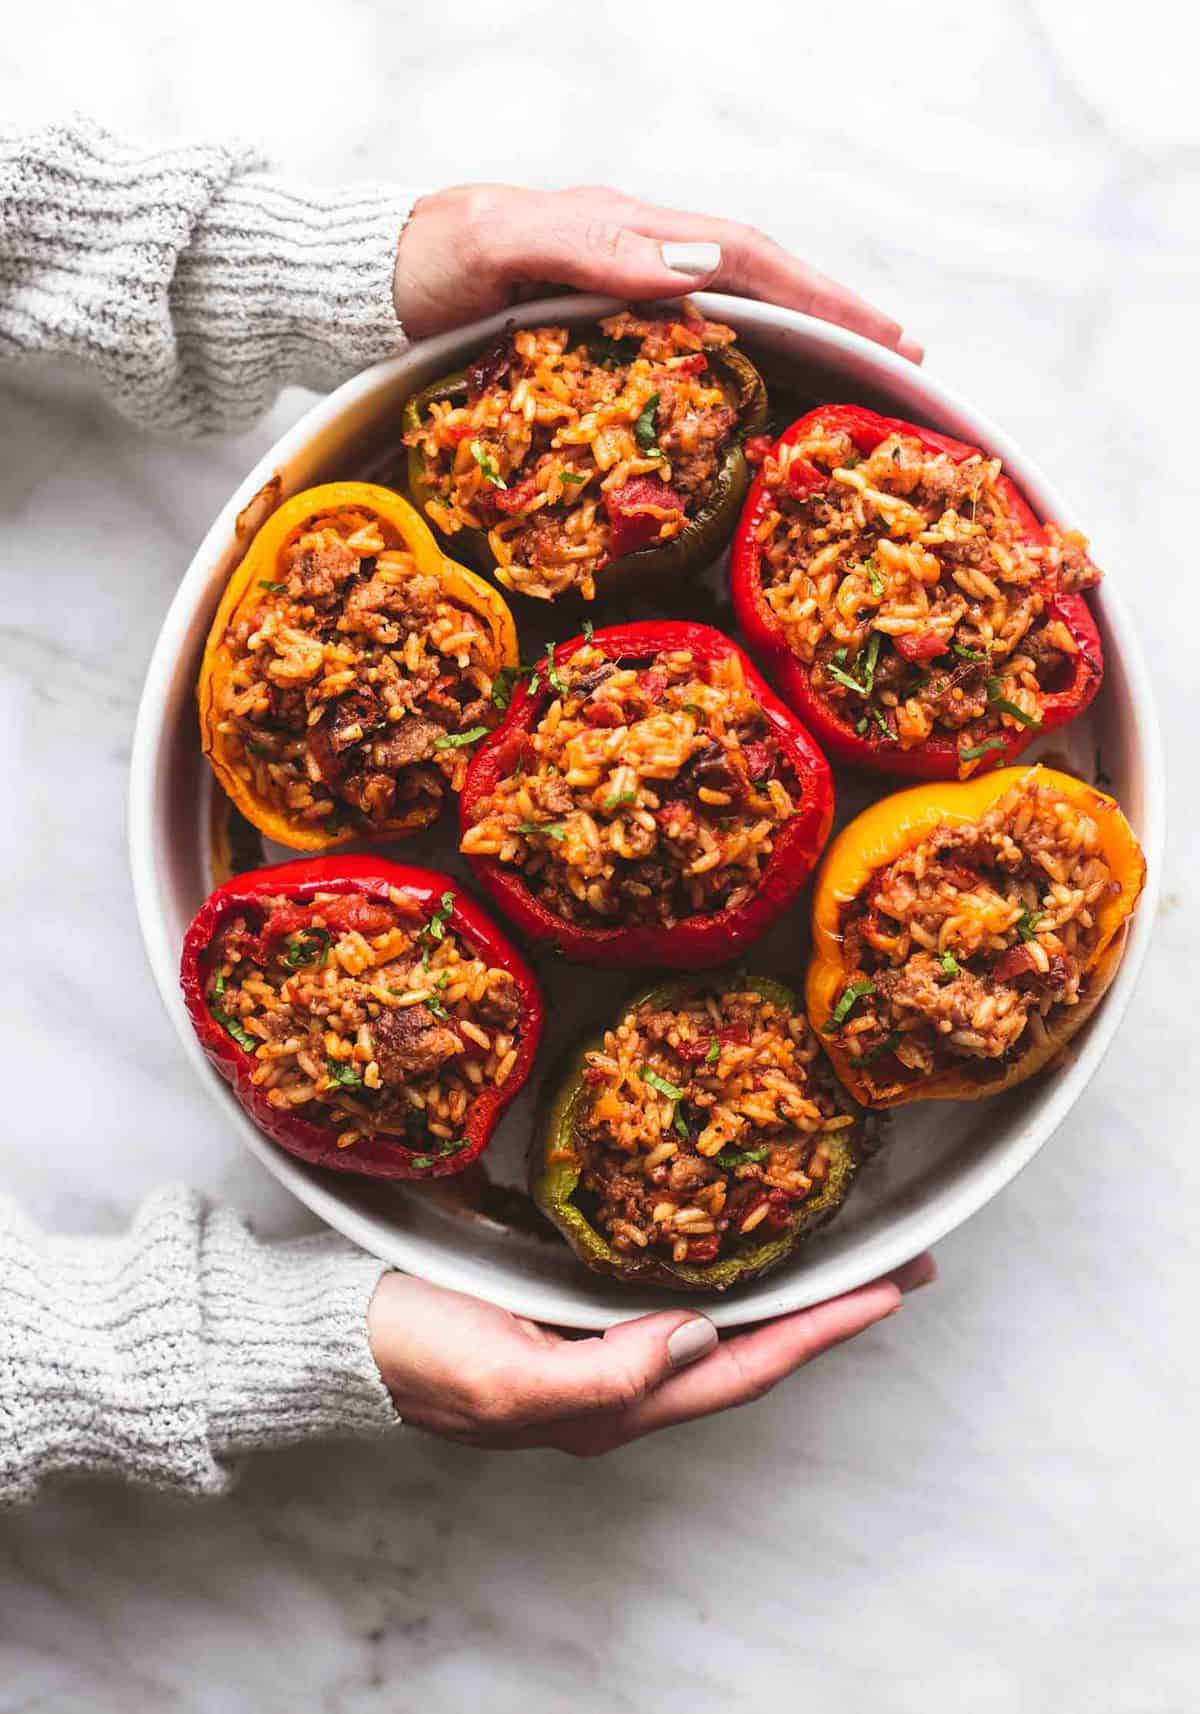 top view of hands holding a round dish of stuffed peppers.